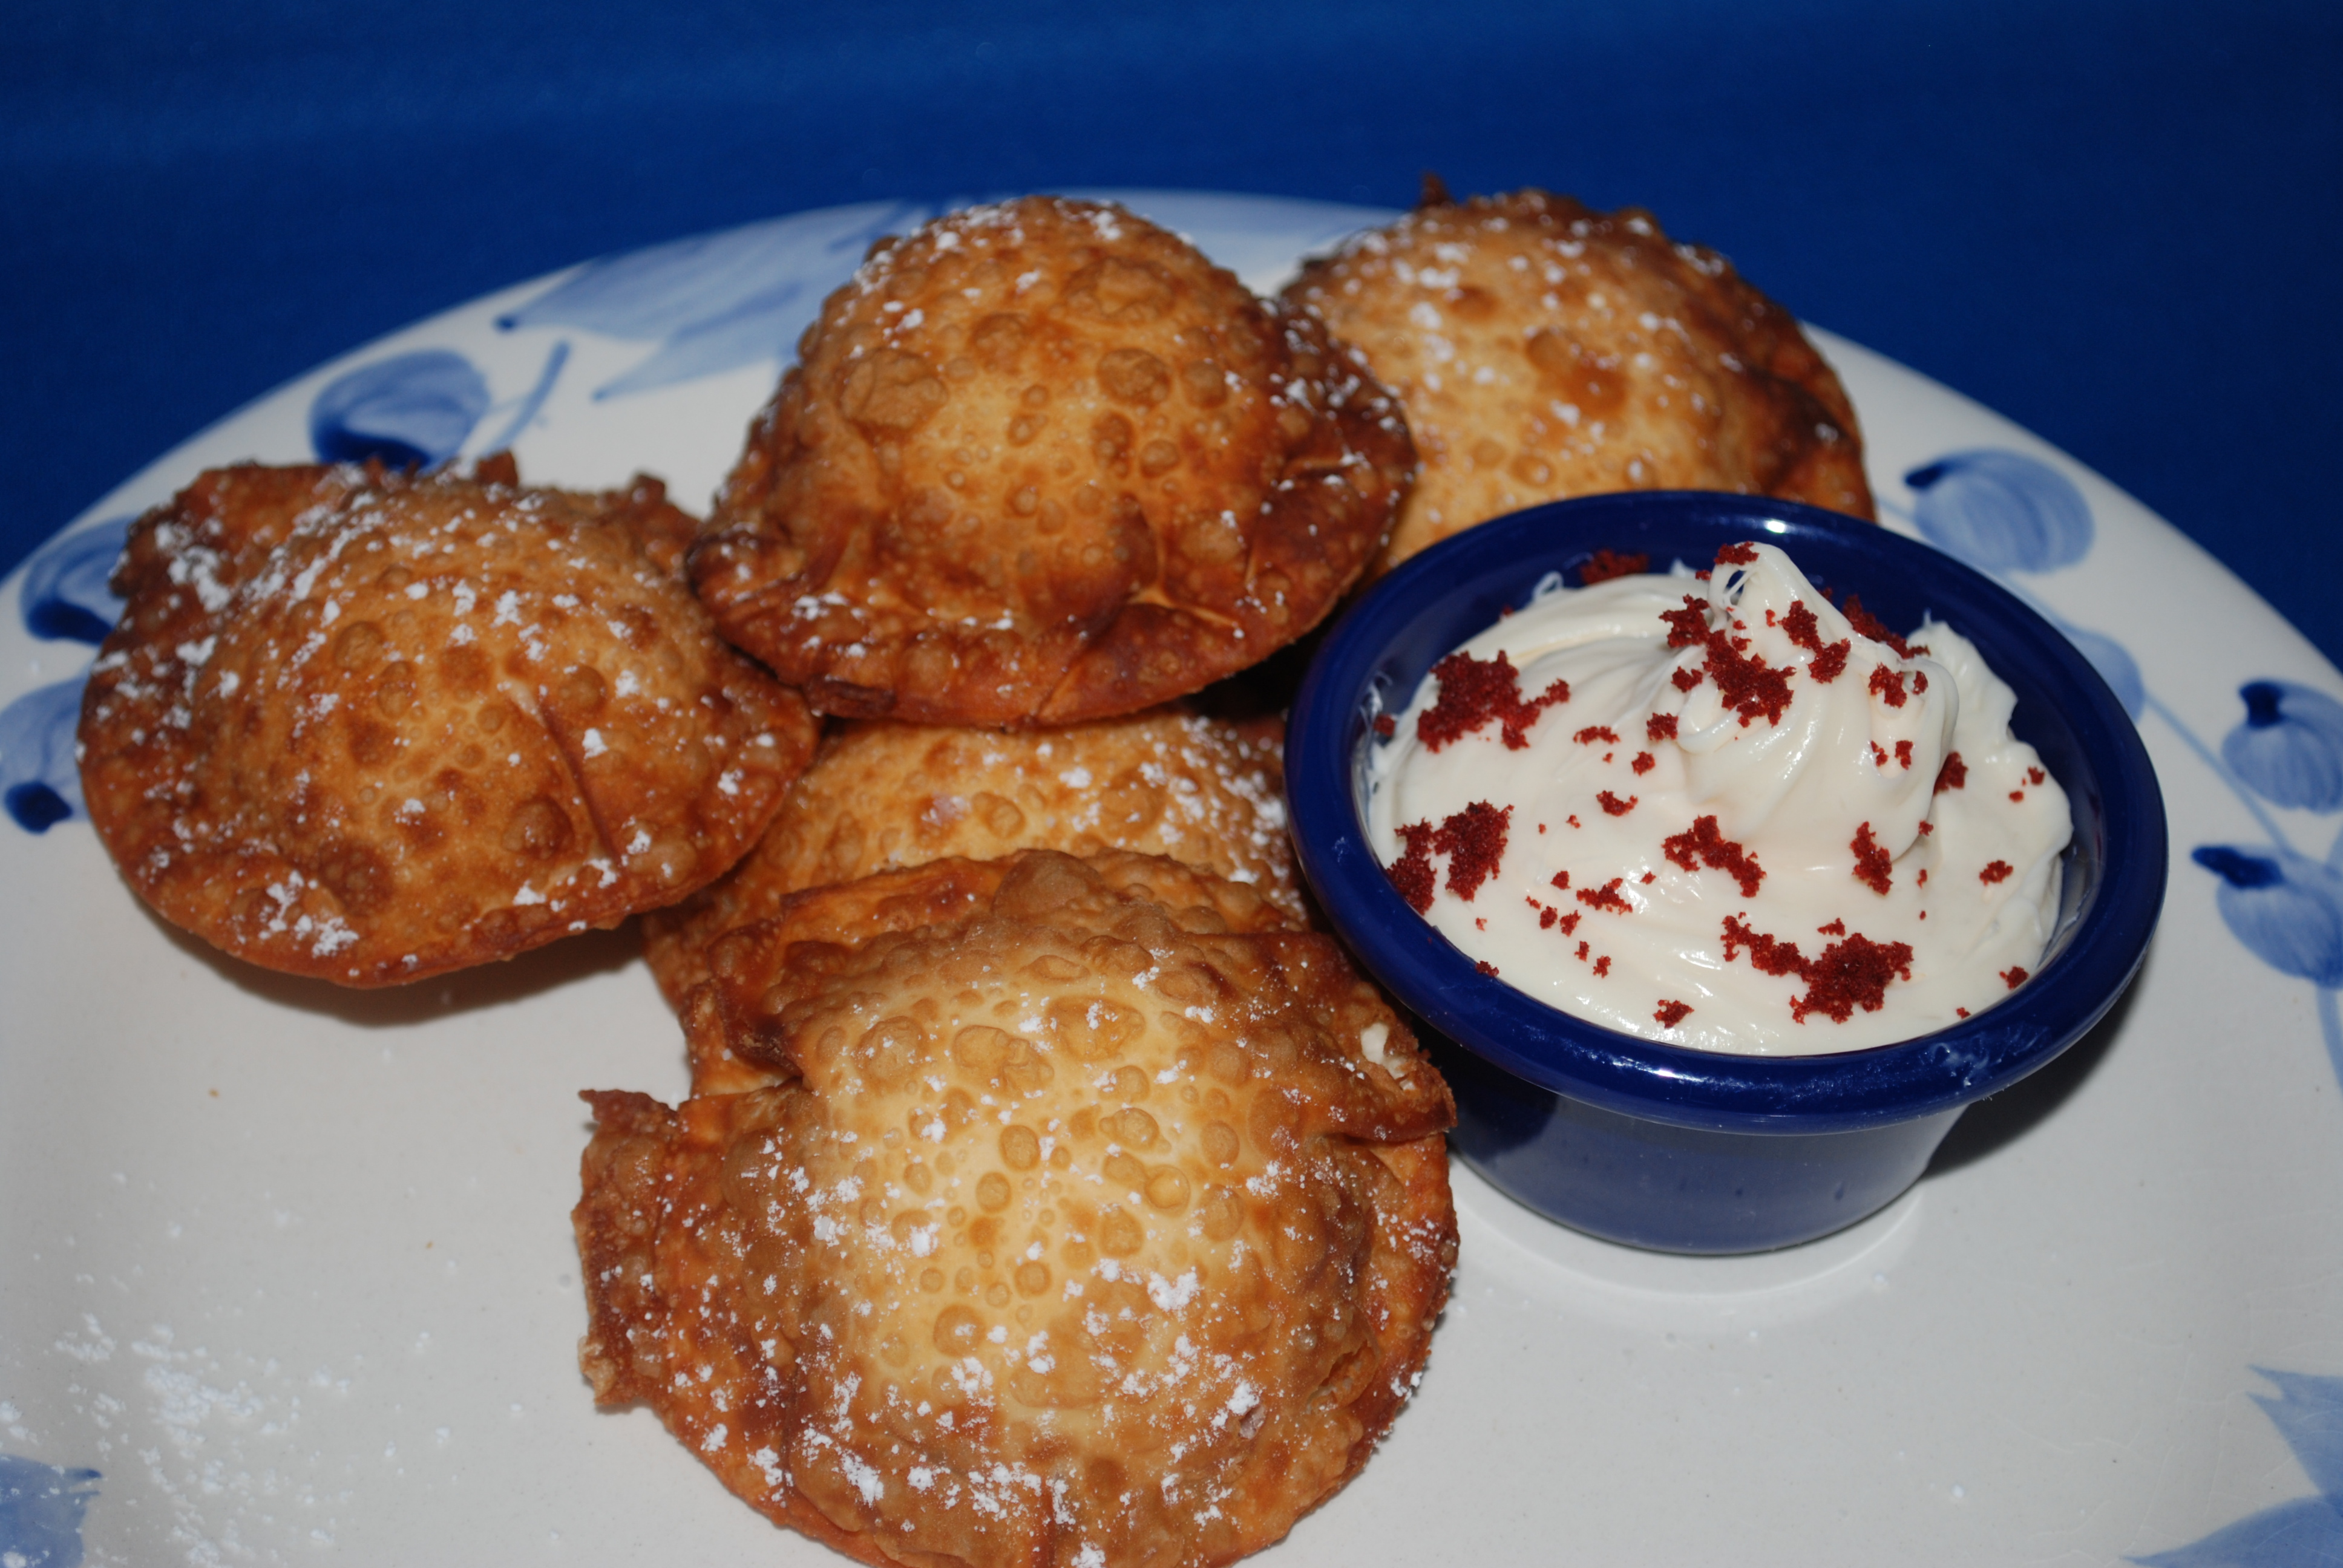 Red Velvet Cheesecake Wontons with cream cheese icing for dipping!